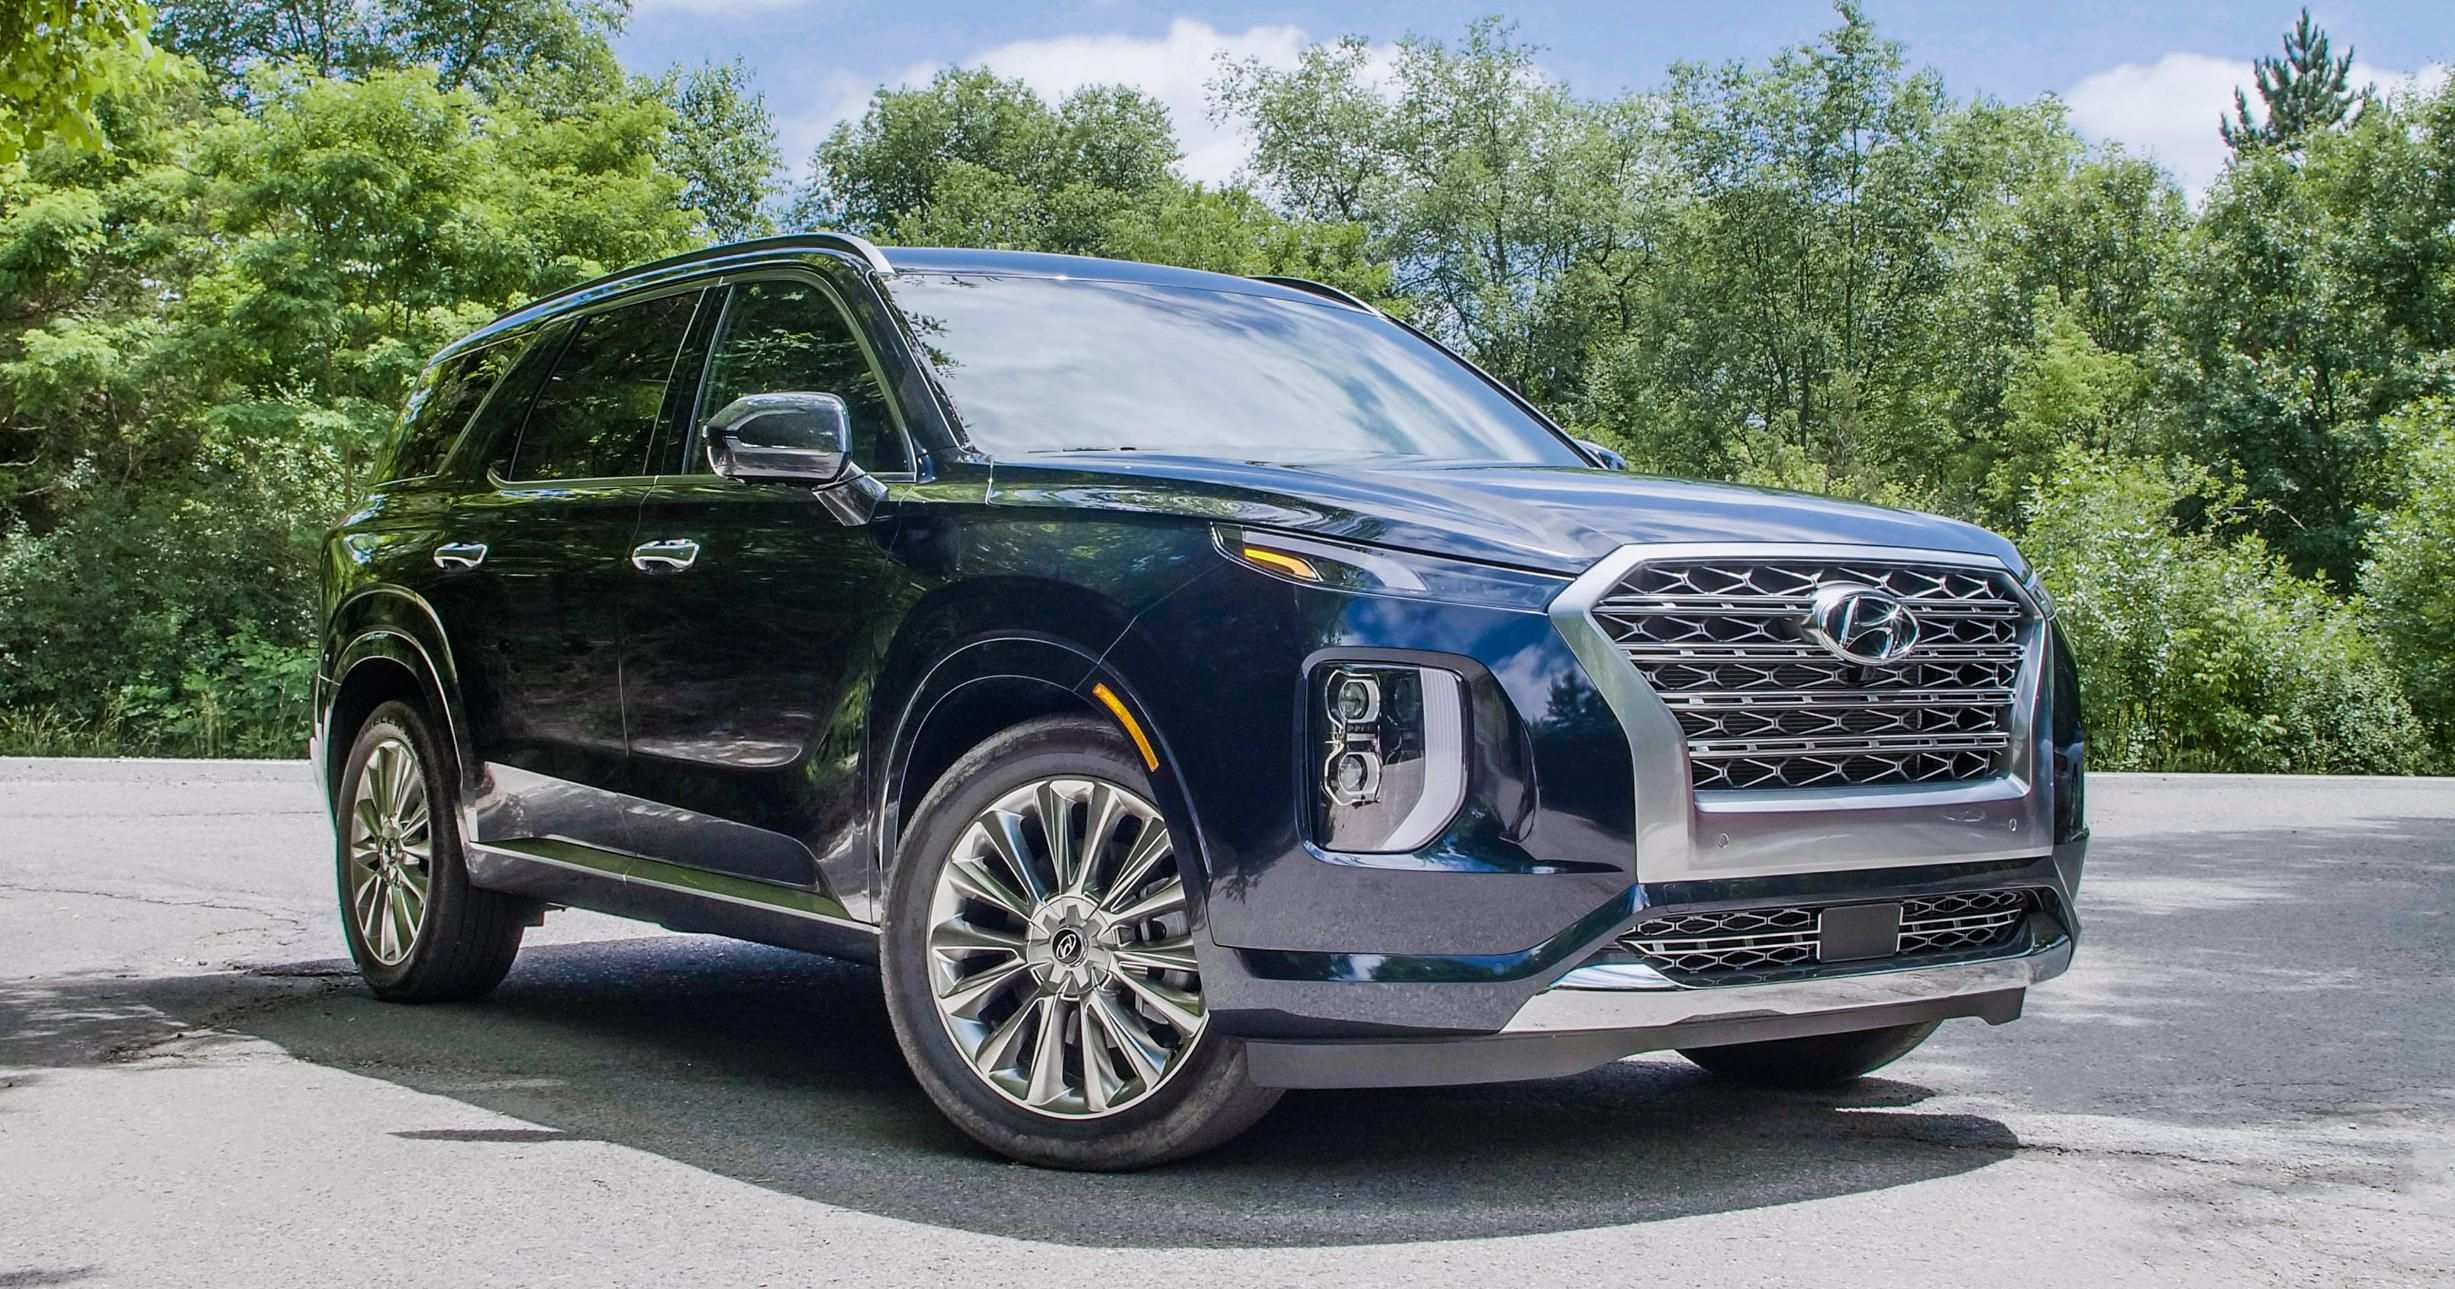 37 Best When Does The 2020 Hyundai Palisade Come Out Price And Release Date